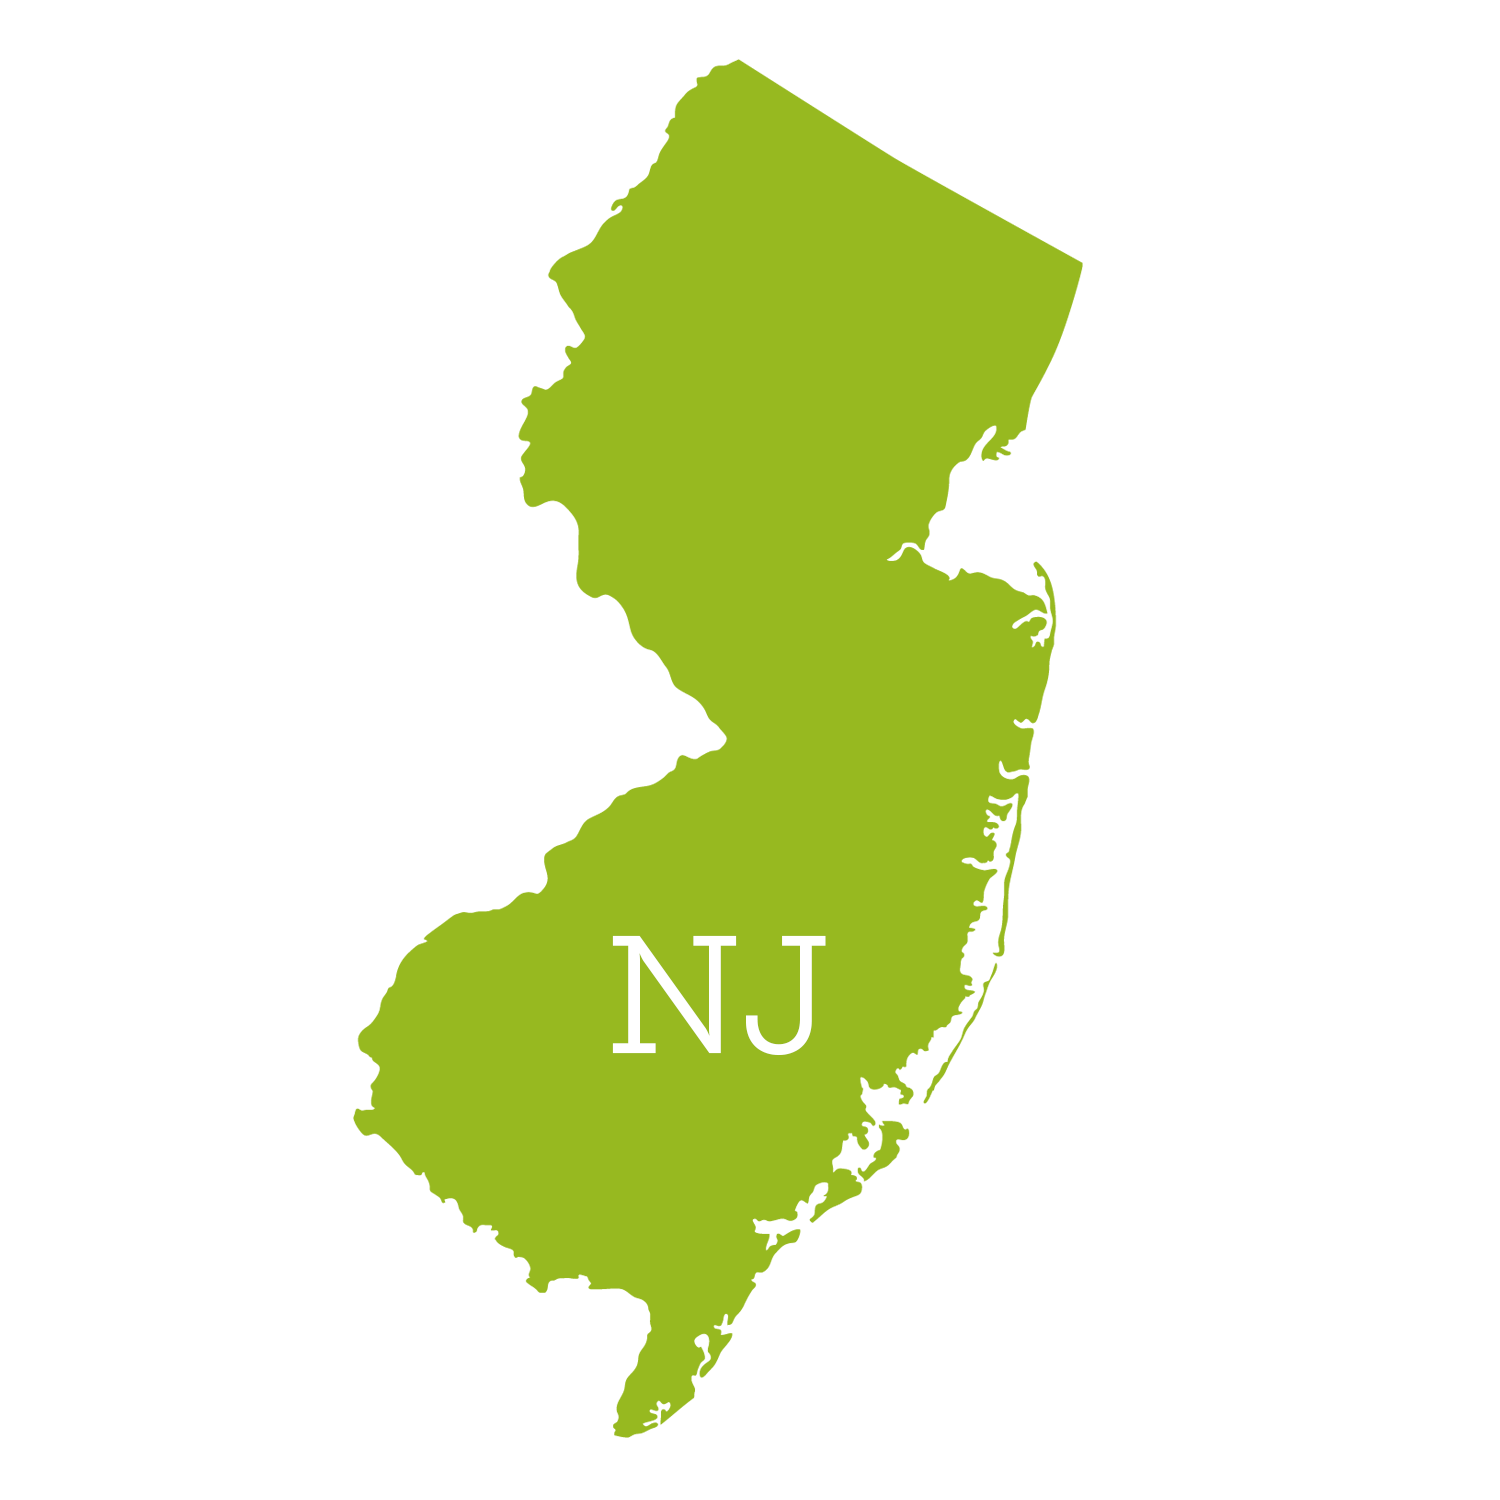 FOOLPROOF_WEBSITE_DISTRIBUTION MAP ICONS_NJ.png